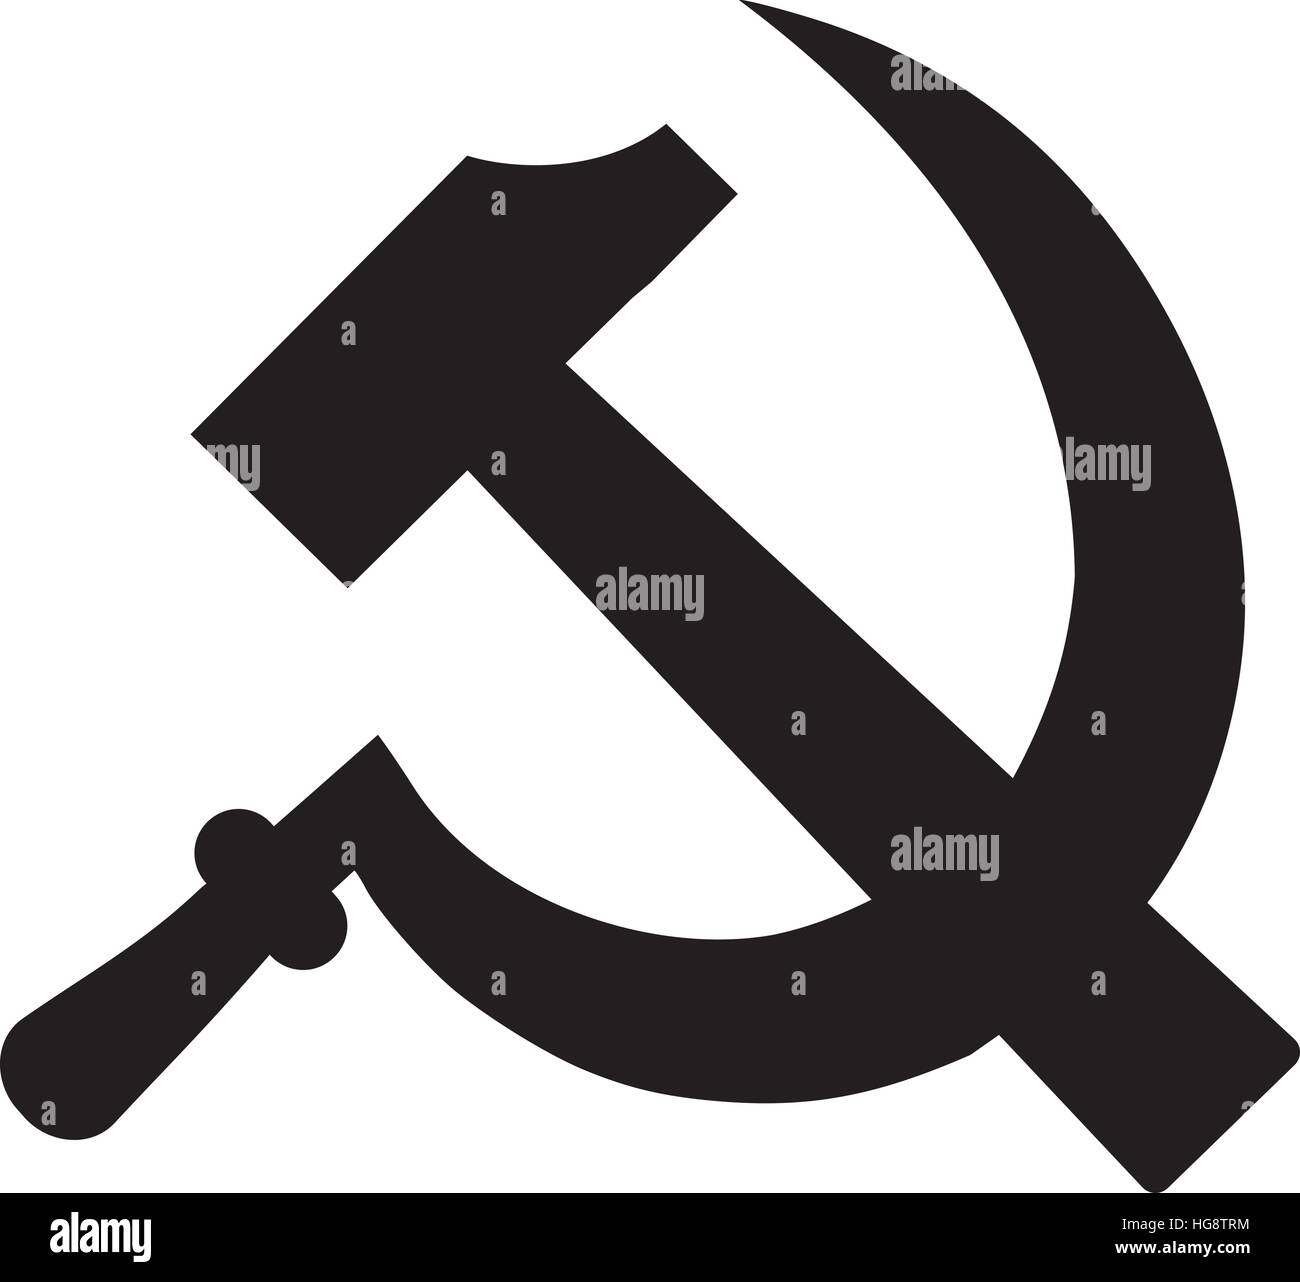 Hammer and sickle - communism sign - Stock Image